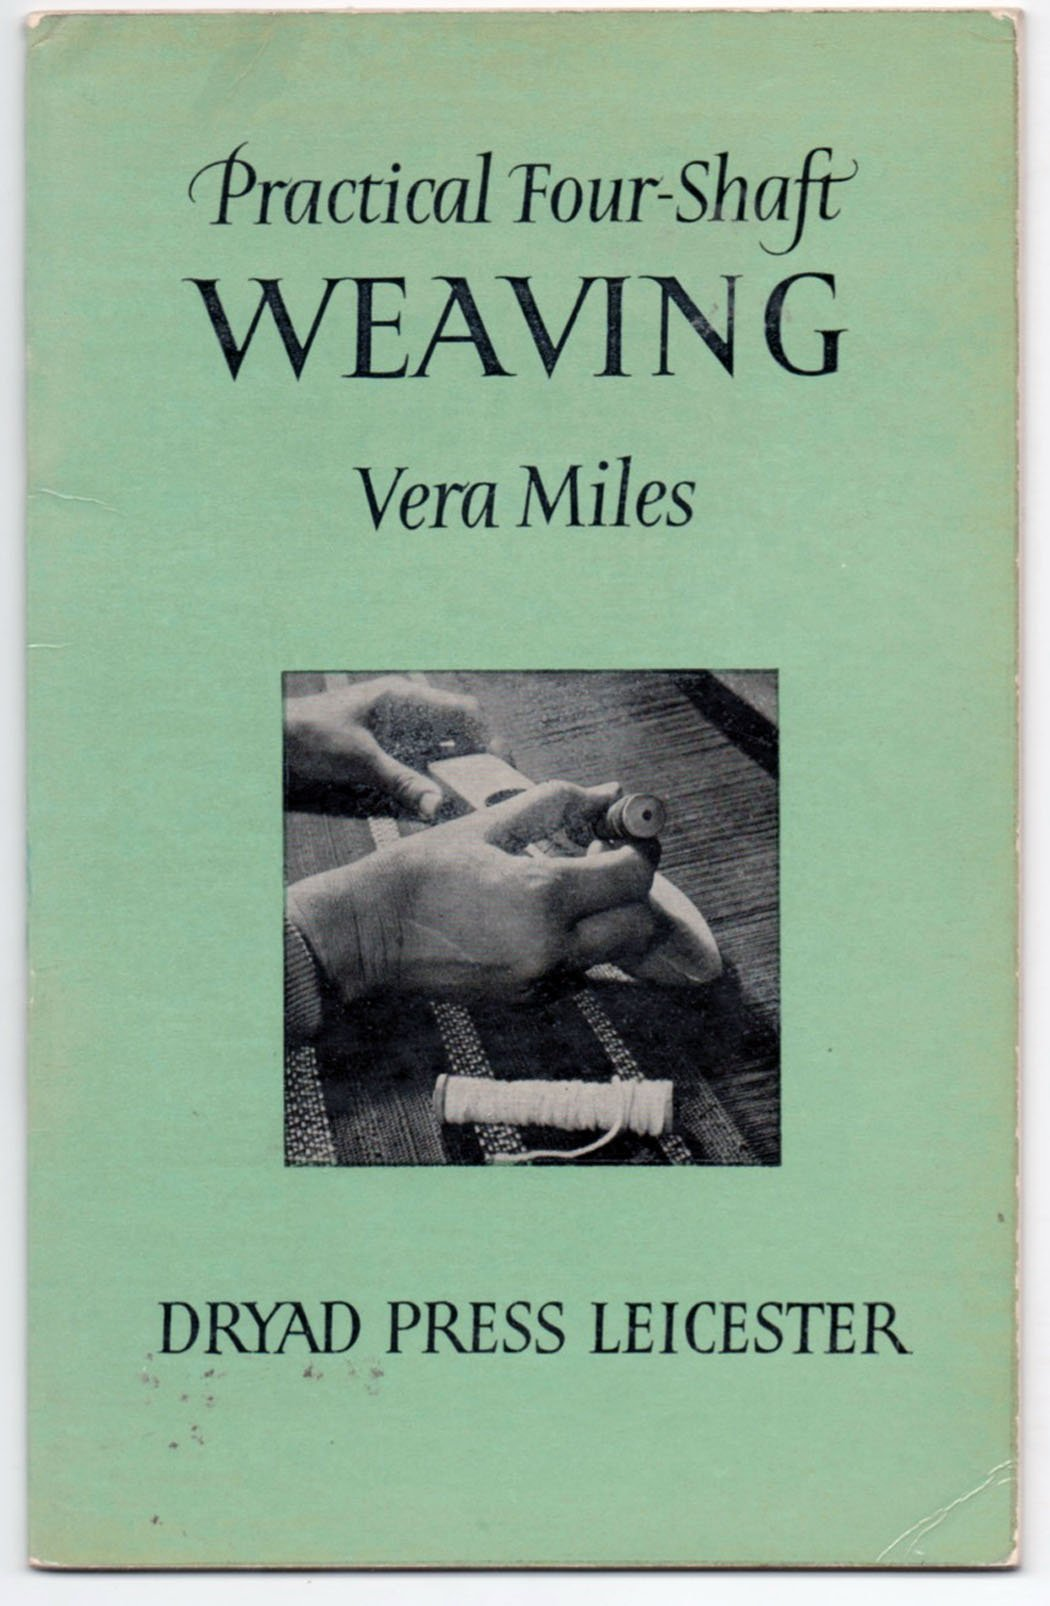 Practical four-shaft weaving, including fourteen useful articles